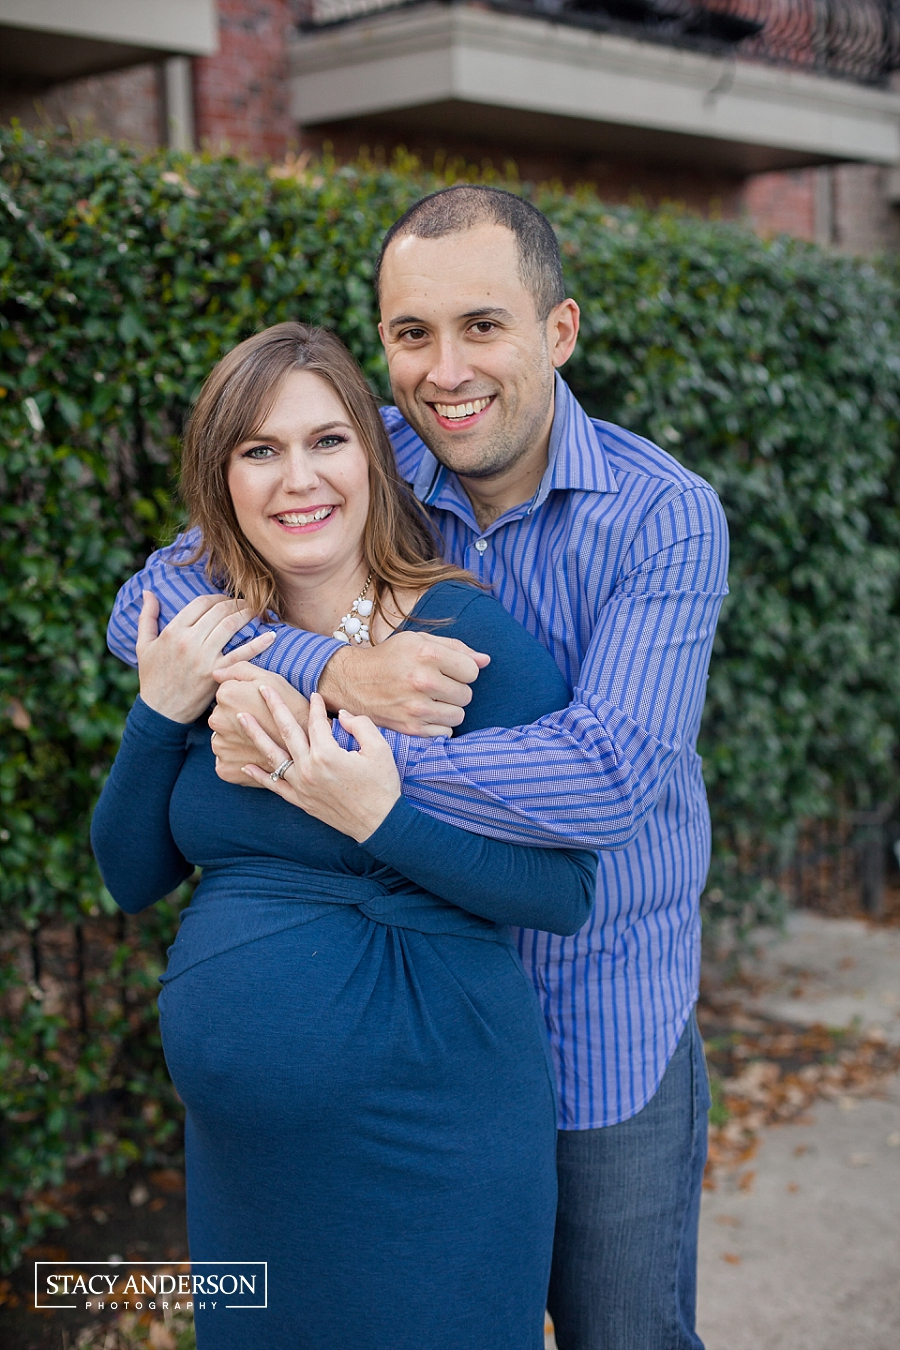 Stacy Anderson Photography Houston Maternity Photographer_1180